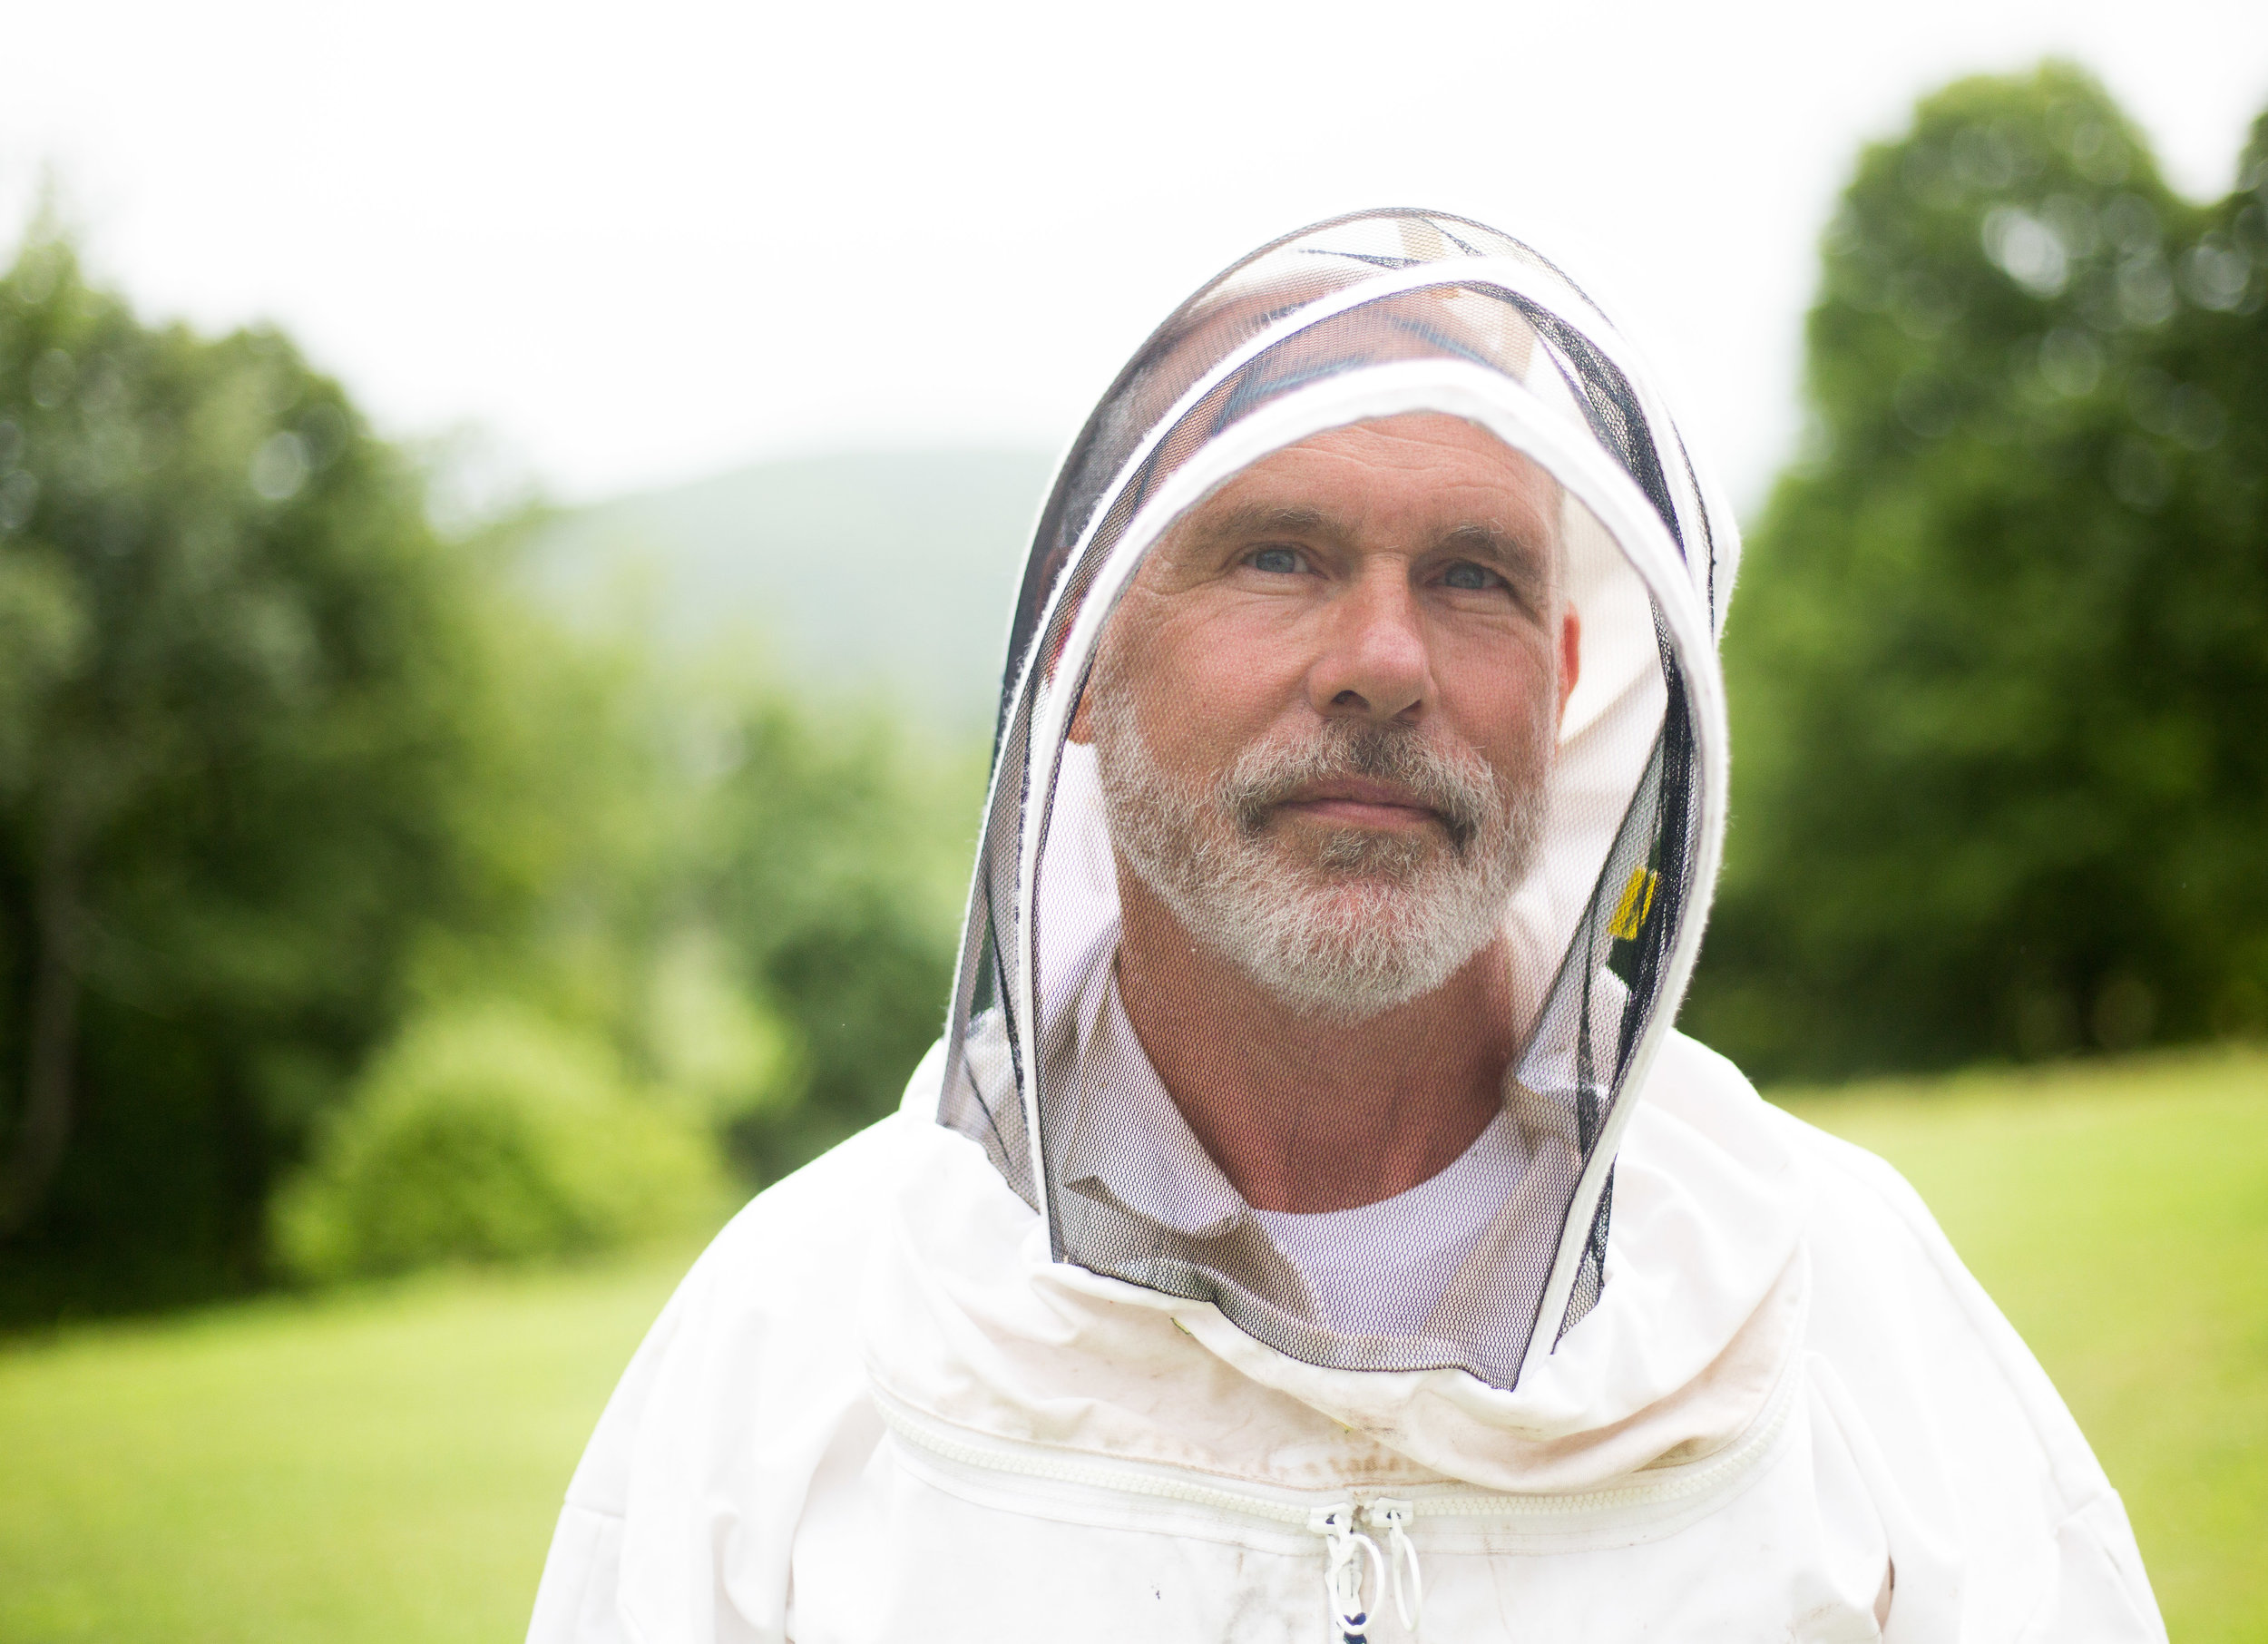 Norman Patterson, The YellowJacket Expert